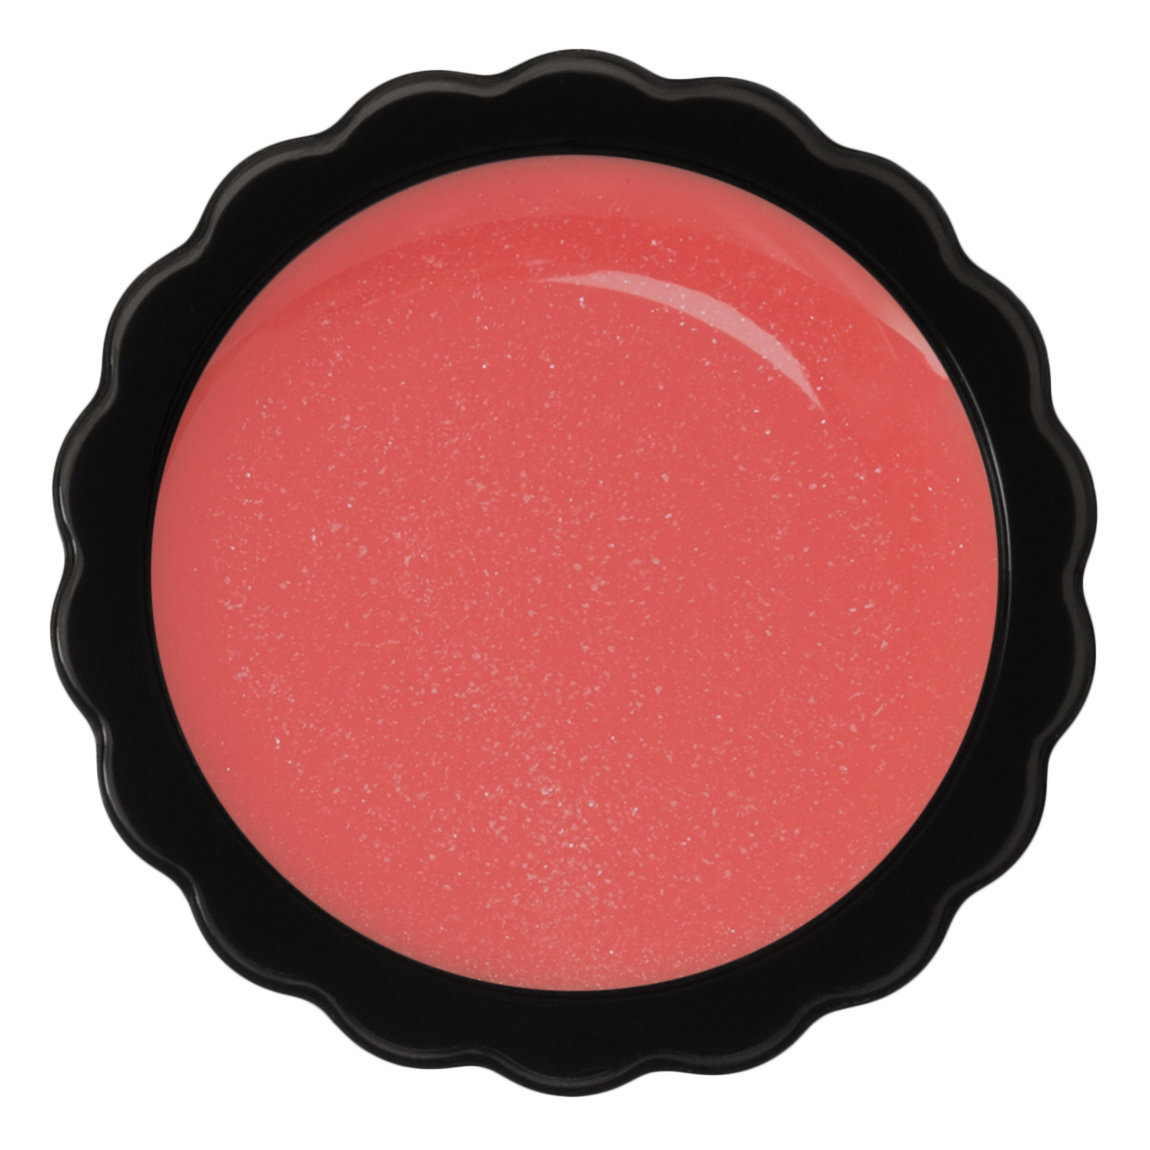 Anna Sui Lip & Face Color G G600 product swatch.